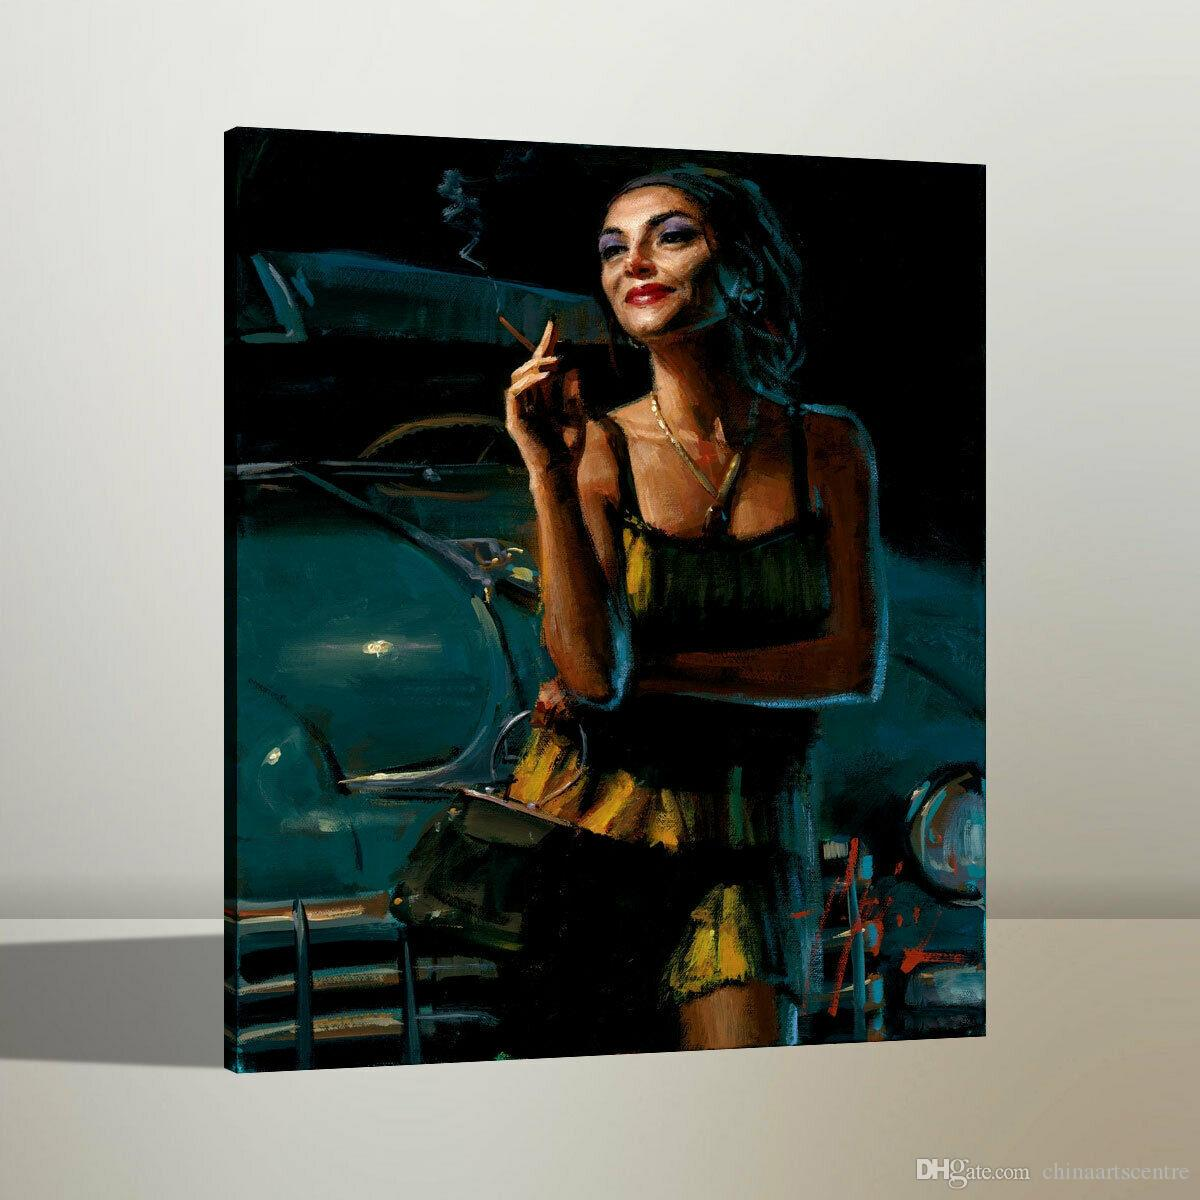 Fabian Perez Glamour V High Quality Handpainted & HD Print Figure Portrait Art Oil Painting On Canvas Wall Art Home Office Deco p24